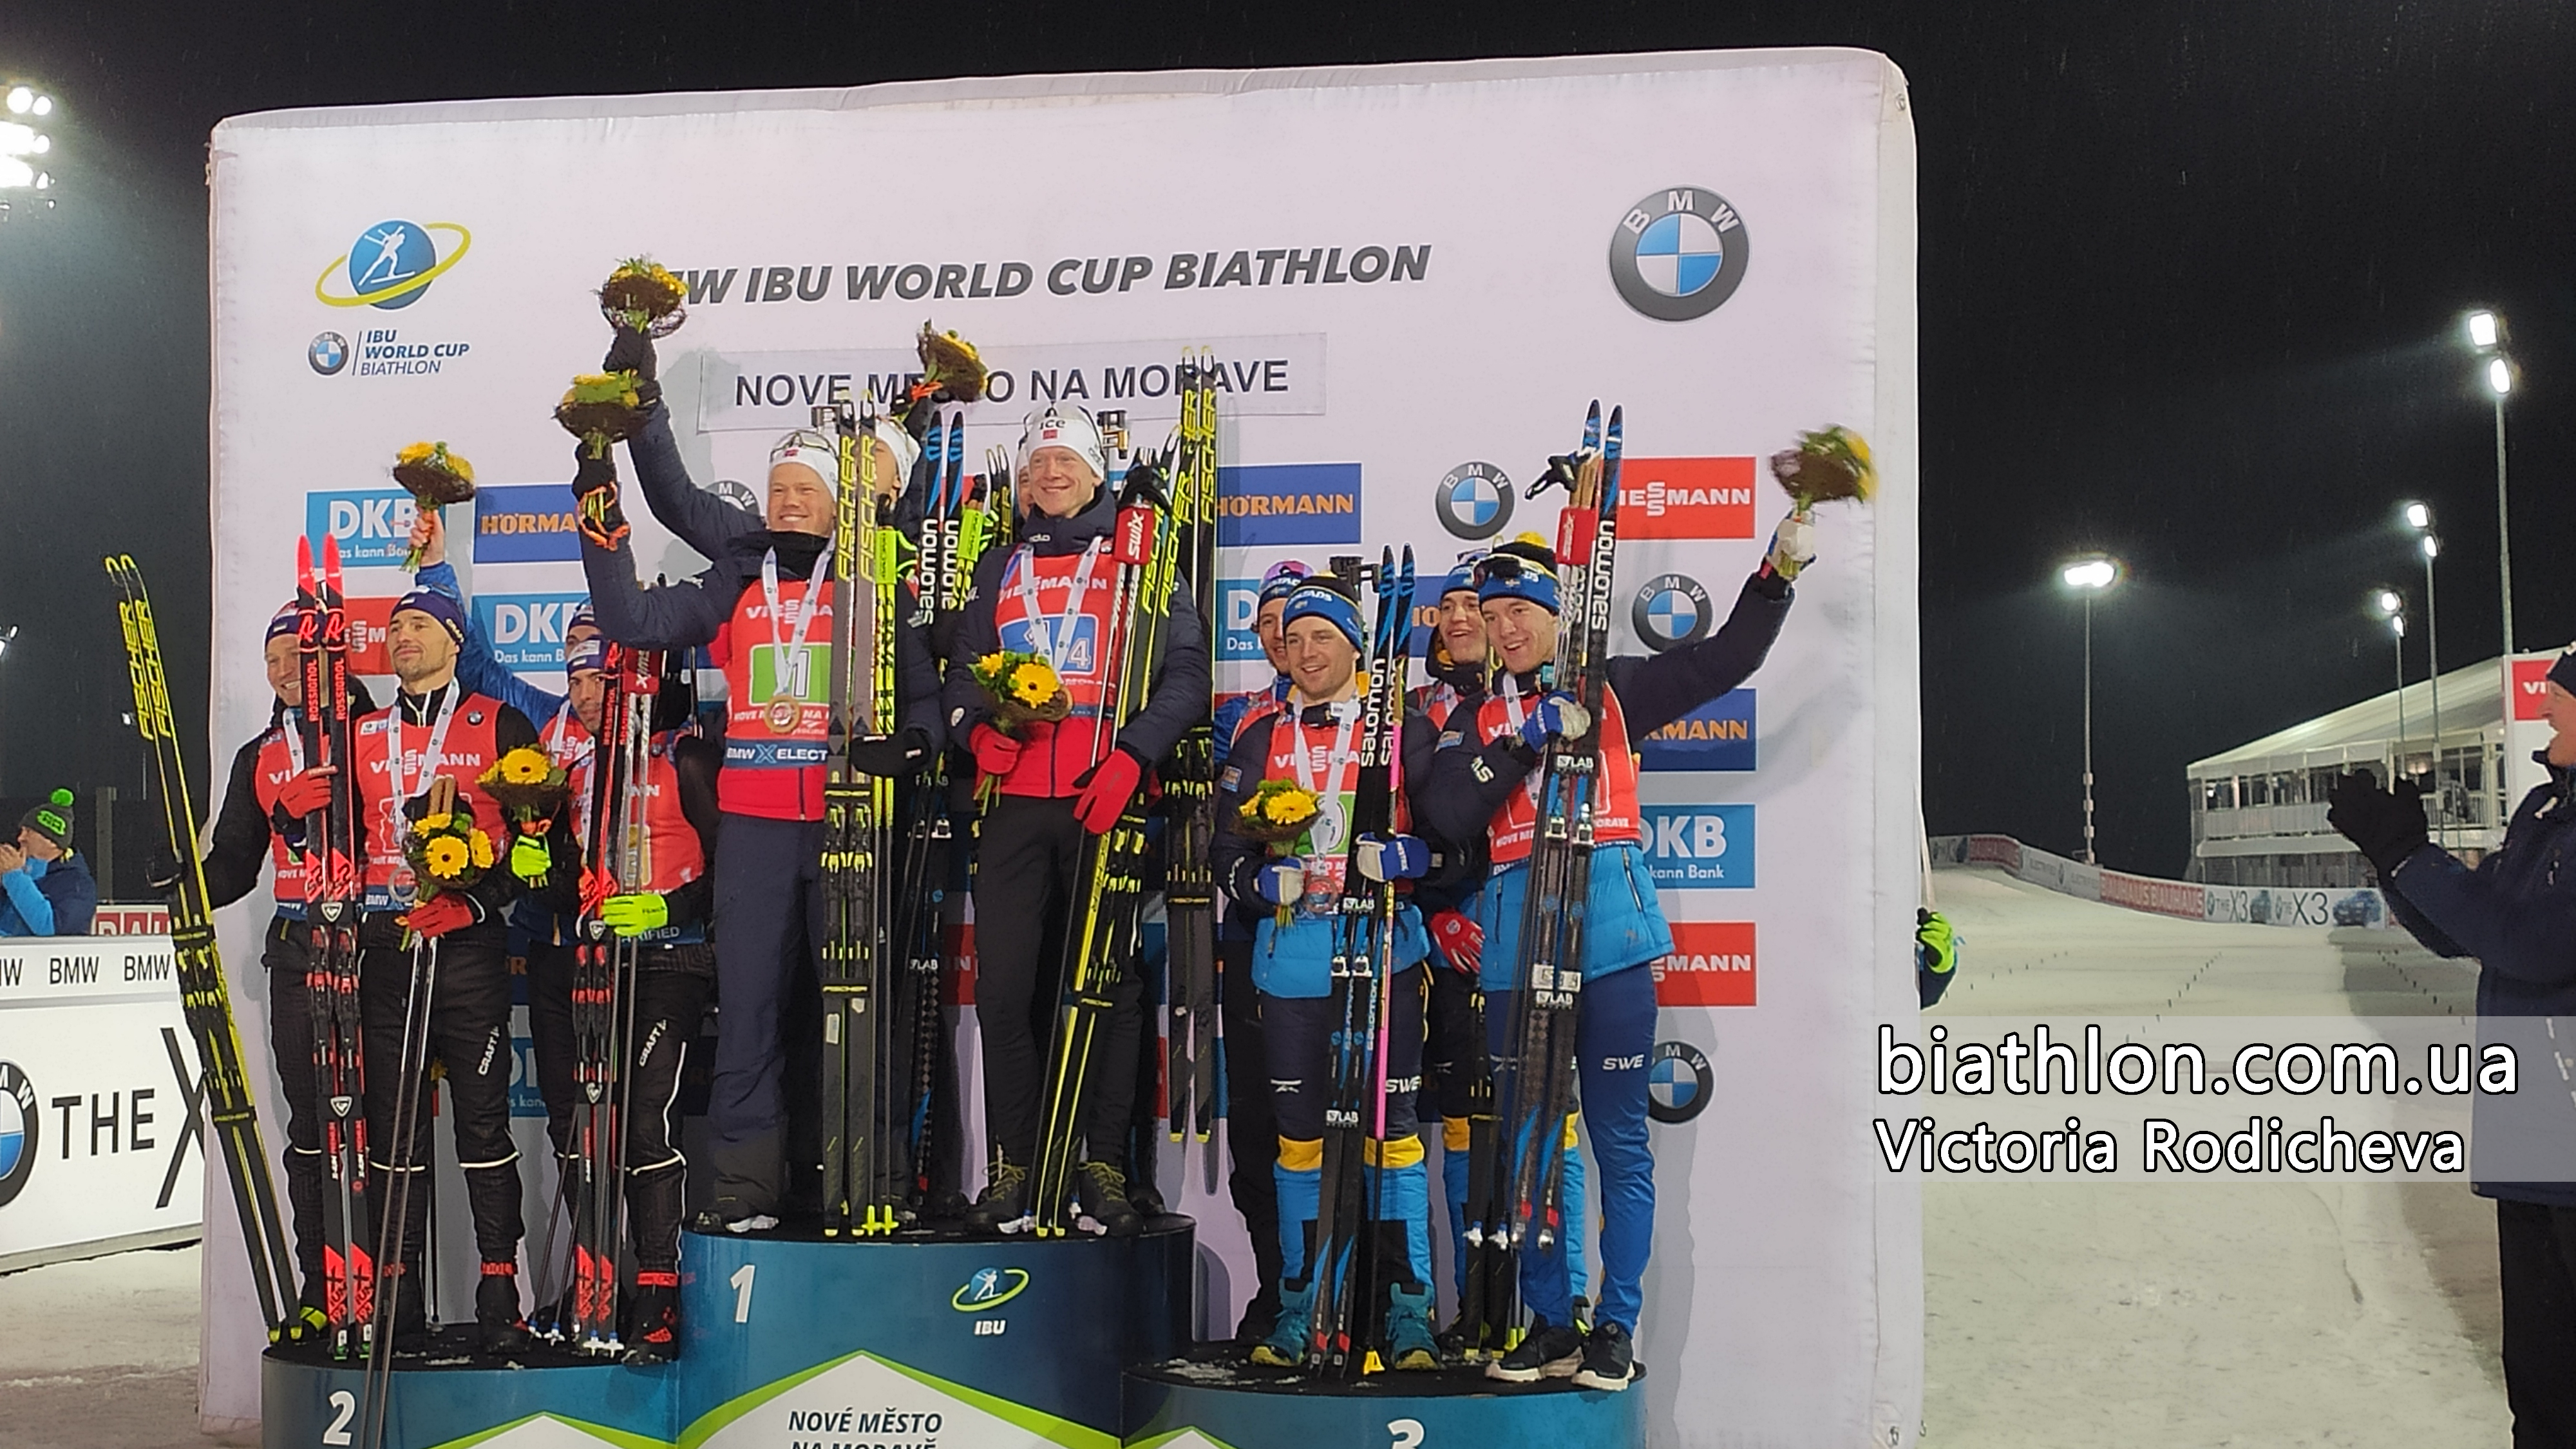 https://www.biathlon.com.ua/uploads/2020/118041.jpg